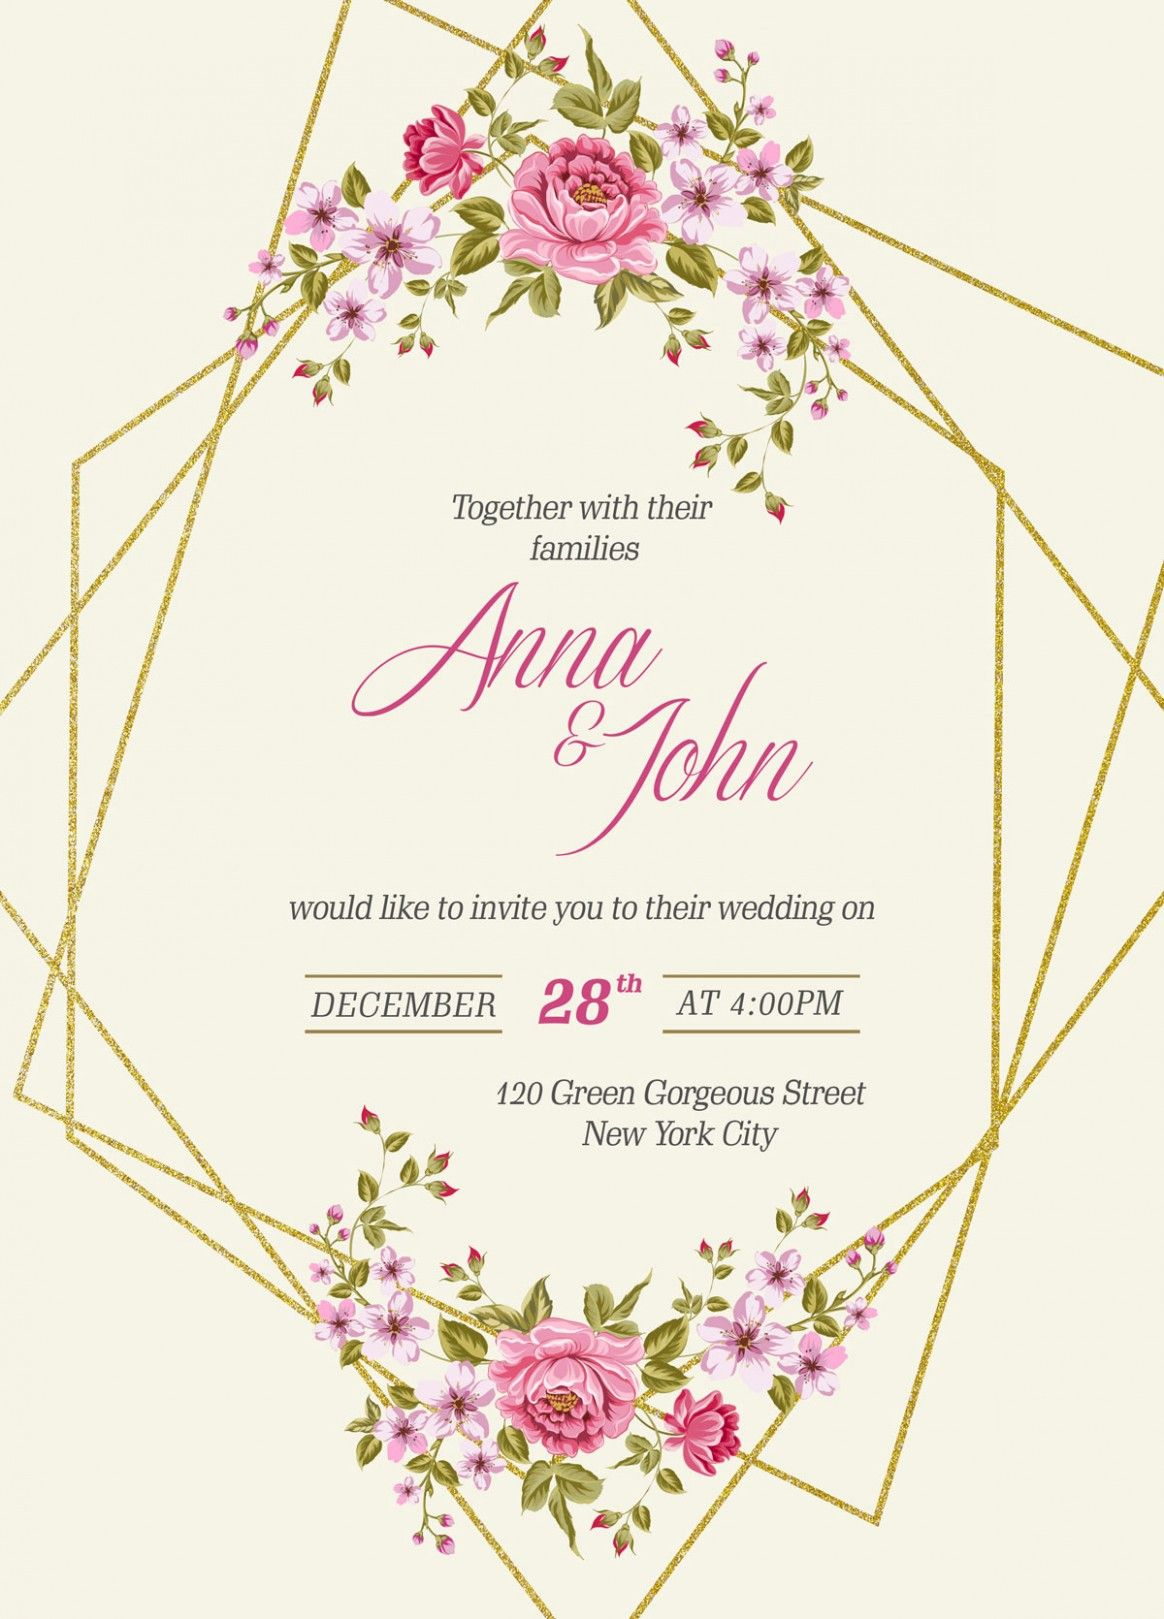 Wedding E Card Template Free Download Is Wedding Wedding Invitations Printable Templates Free Printable Wedding Invitations Free Wedding Invitation Templates